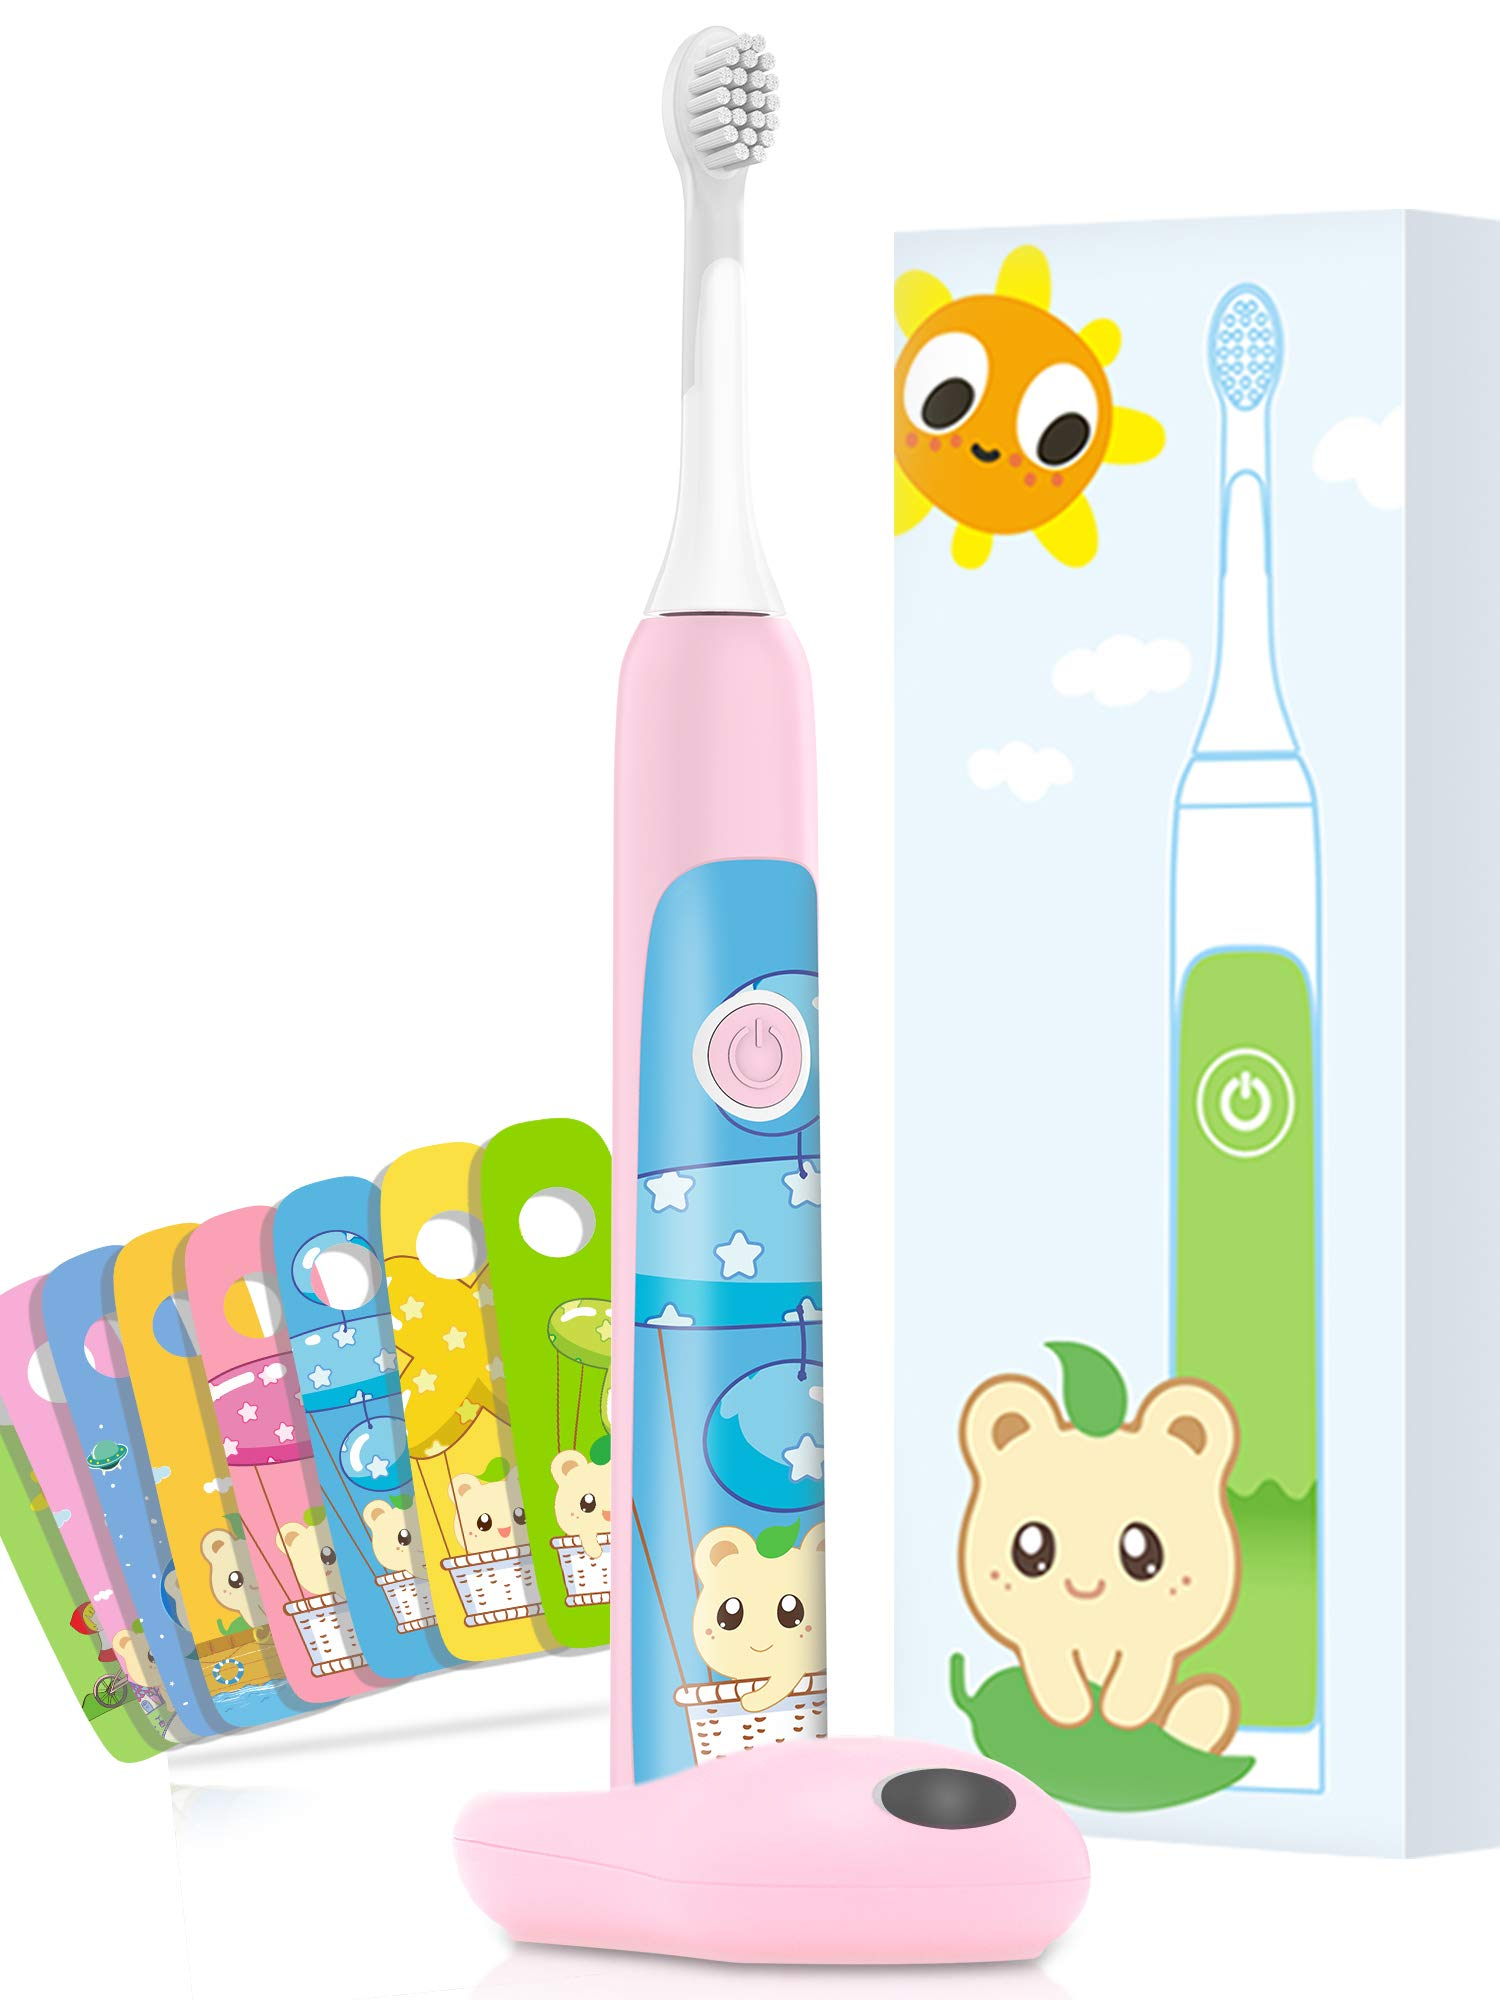 Aiwejay Kids SONIC Electric Toothbrush Reachable For ages 3-12,8 Cute Stickers, 3 Vibration Modes,Pink by Aiwejay (Image #1)